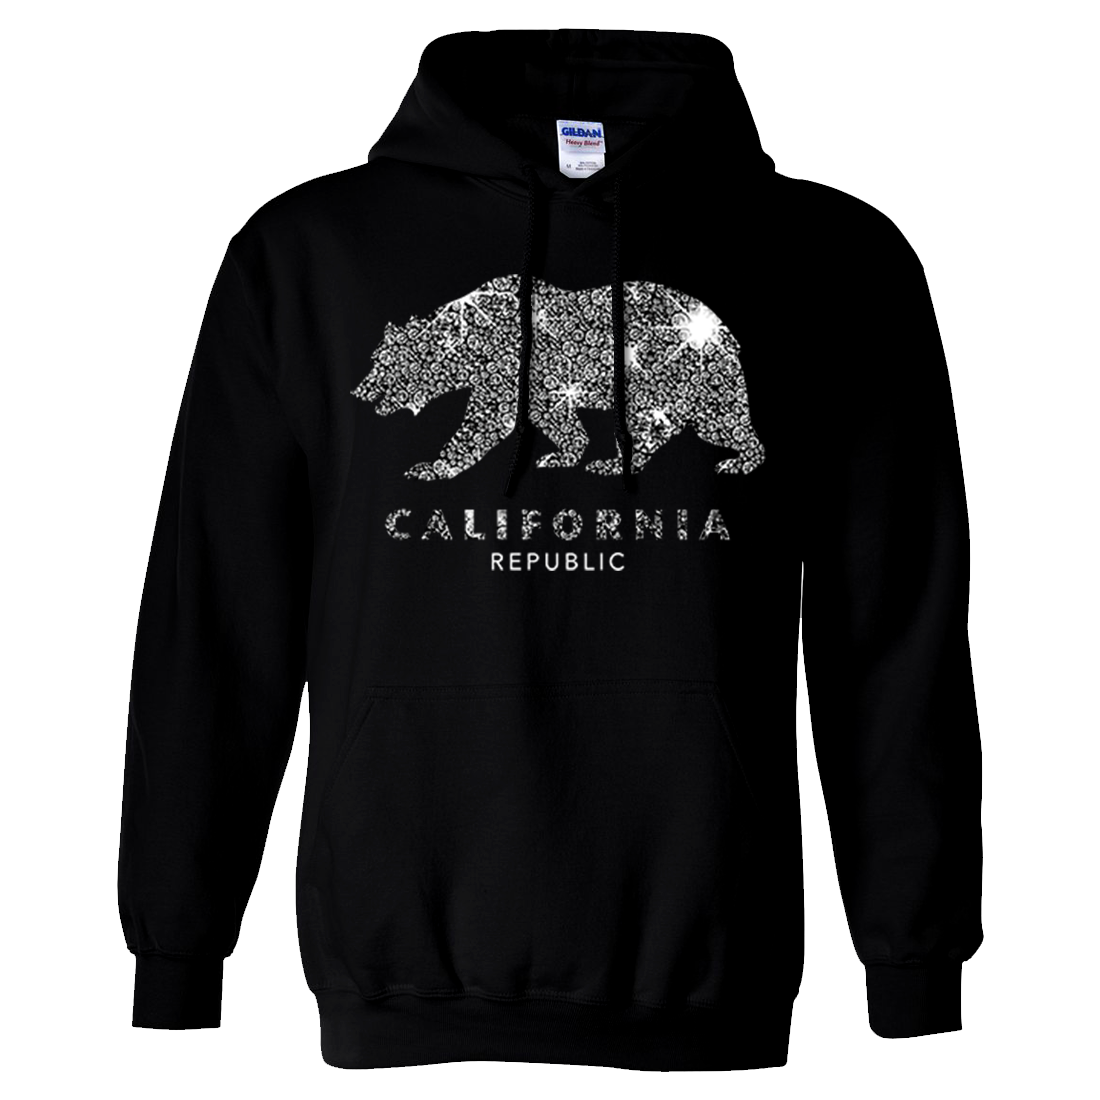 California Republic Sparkle Sweatshirt Hoodie